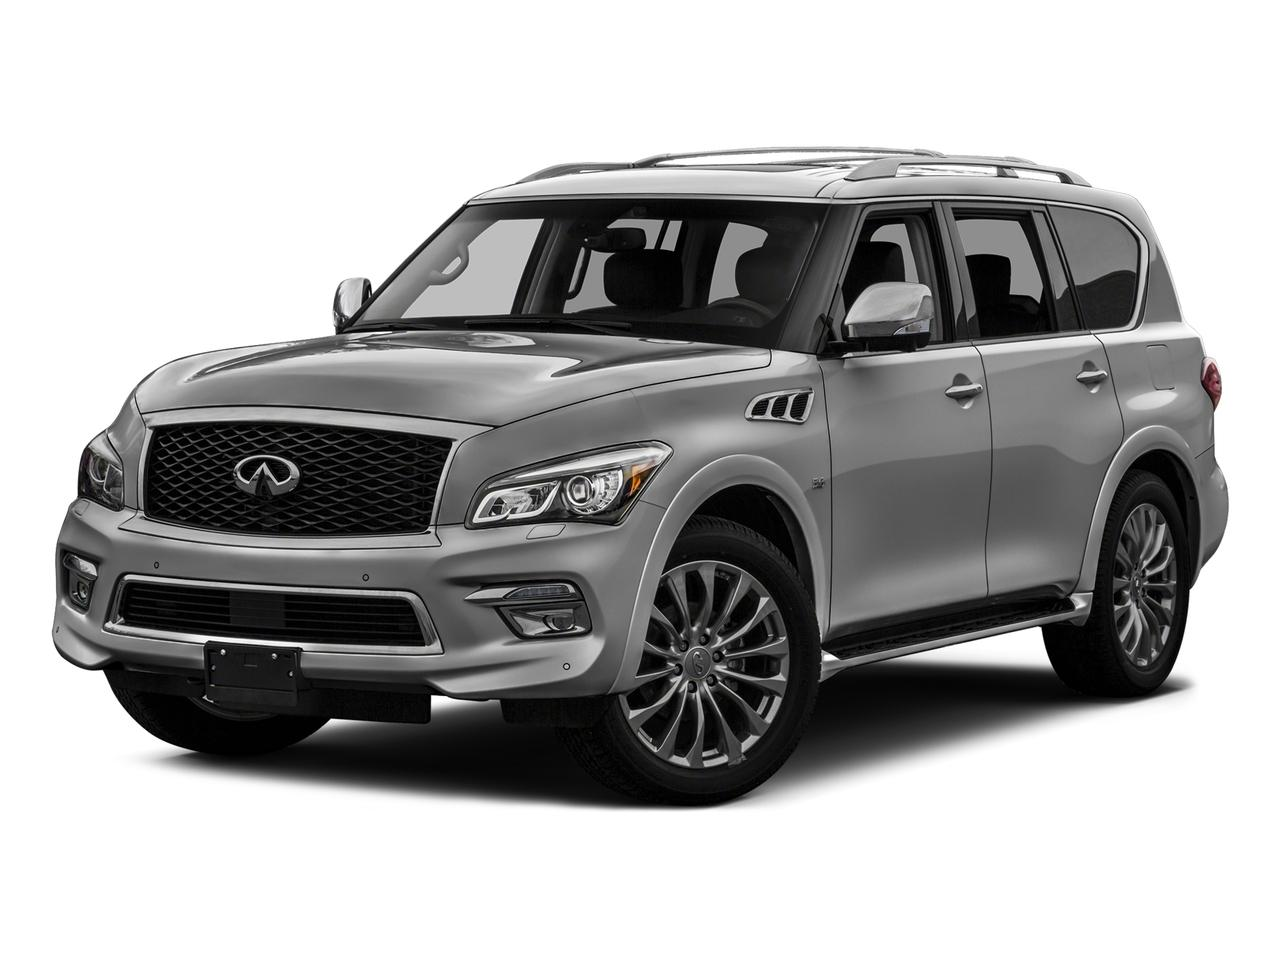 2017 INFINITI QX80 Vehicle Photo in Greeley, CO 80634